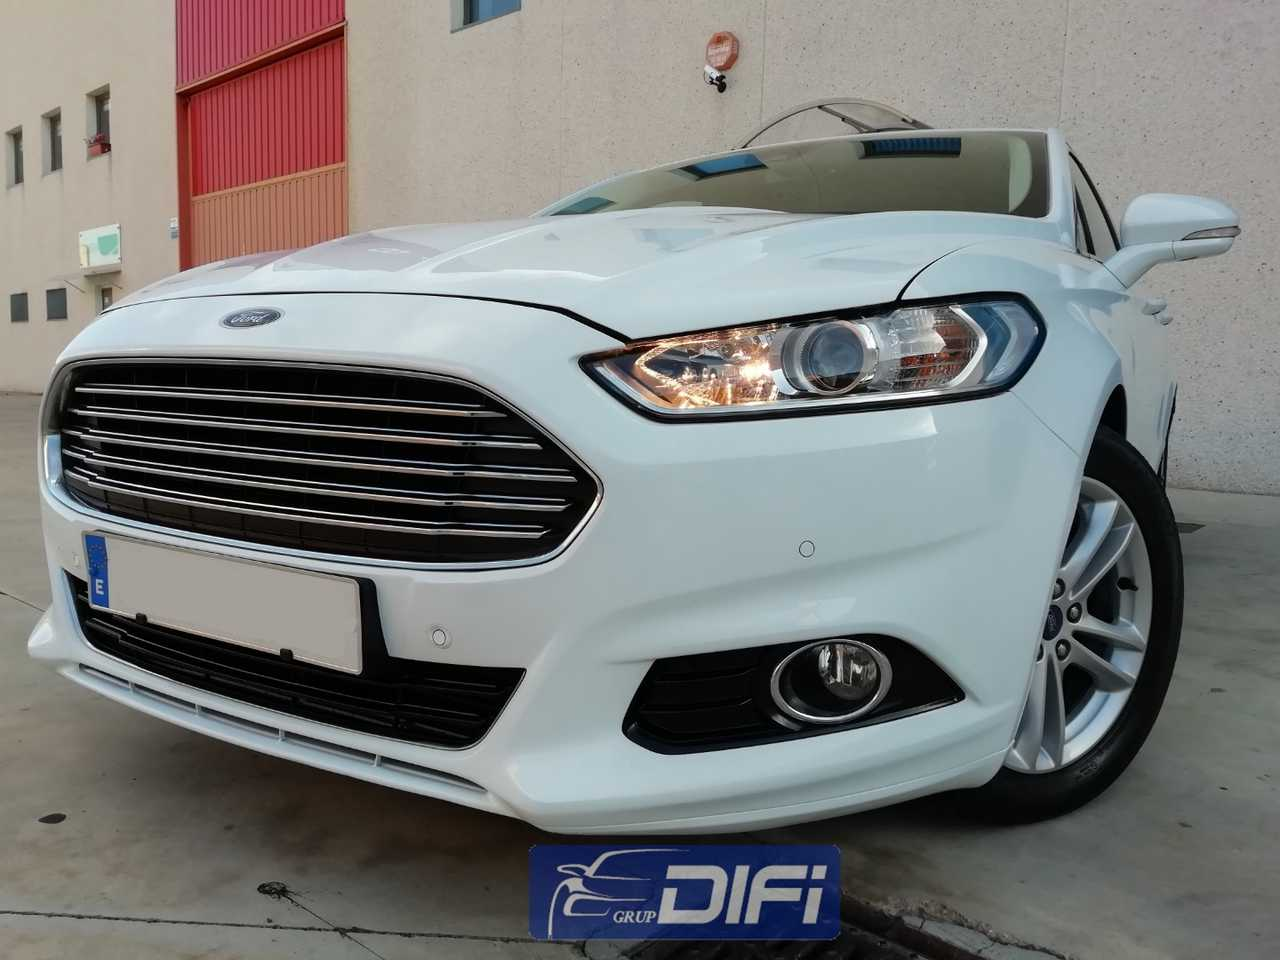 Ford Mondeo 2.0 TDCI POWERSHIFT 150 BUSINESS   - Foto 1